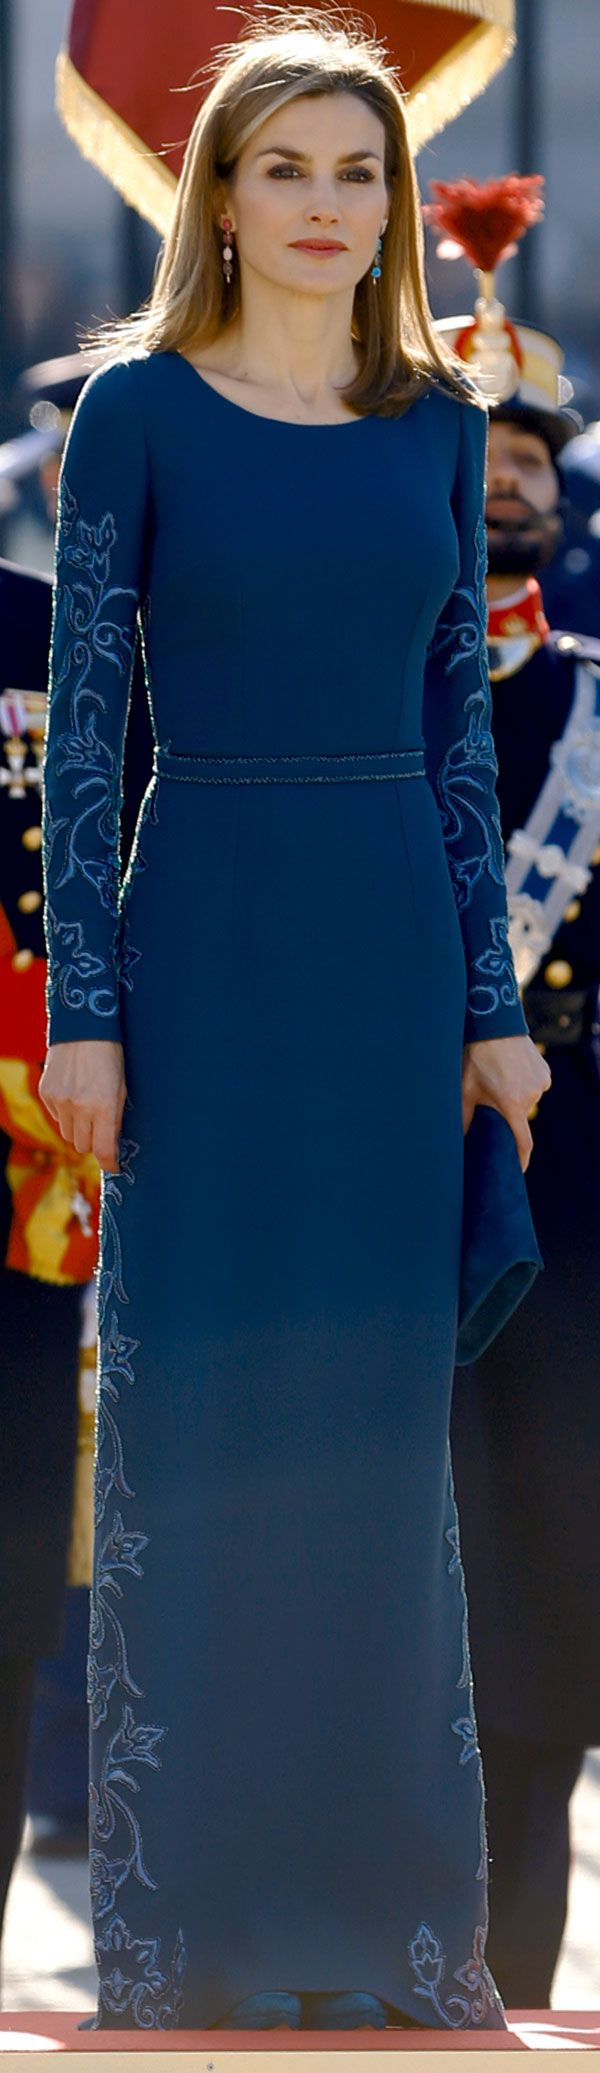 Queen Letizia of Spain - 6.1.2015